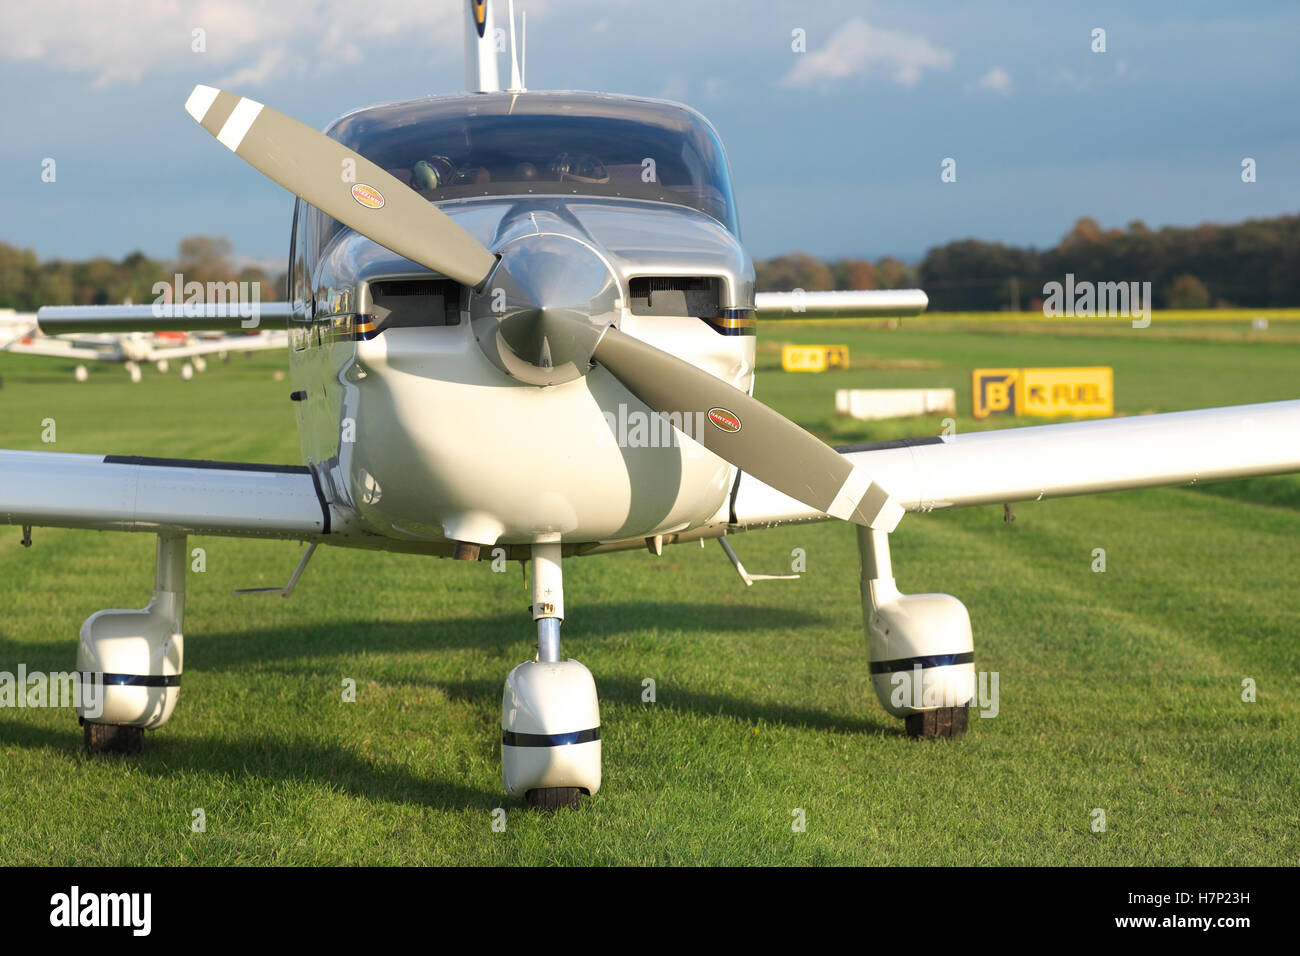 Light aircraft a single engine Socata TB-10 Tobago plane parked at a grass airfield aerodrome in the UK - Stock Image